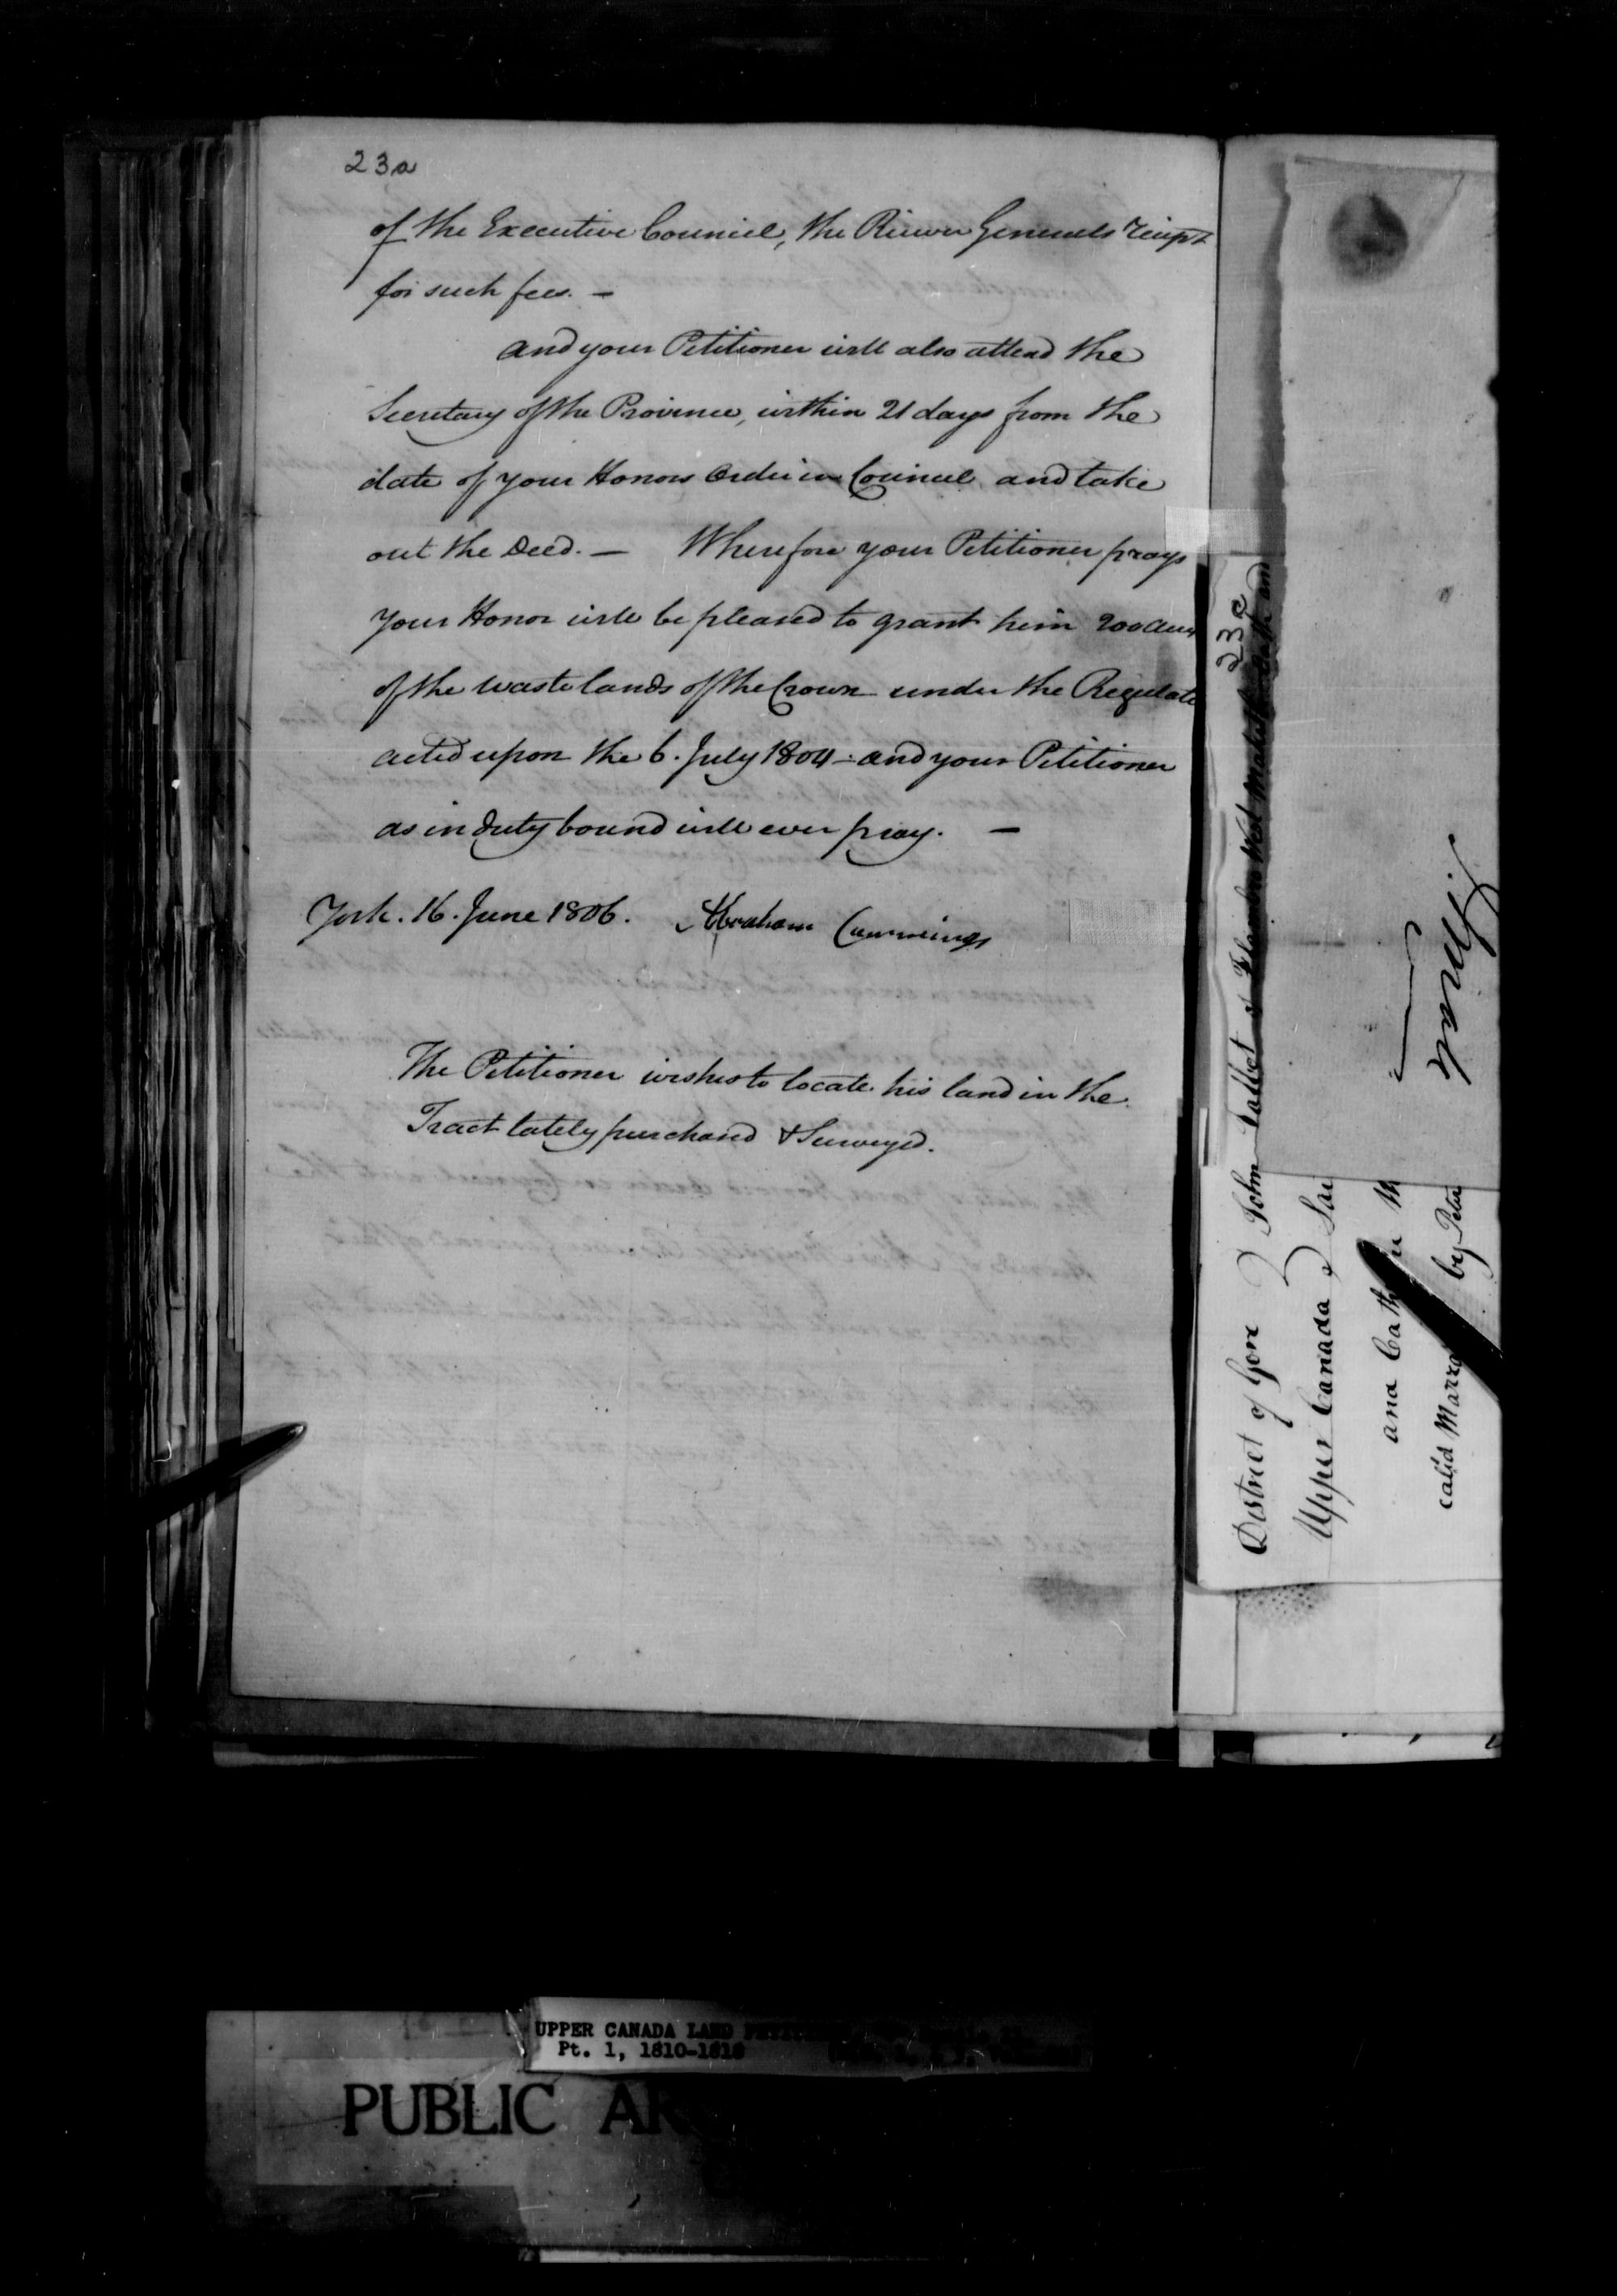 Title: Upper Canada Land Petitions (1763-1865) - Mikan Number: 205131 - Microform: c-1652